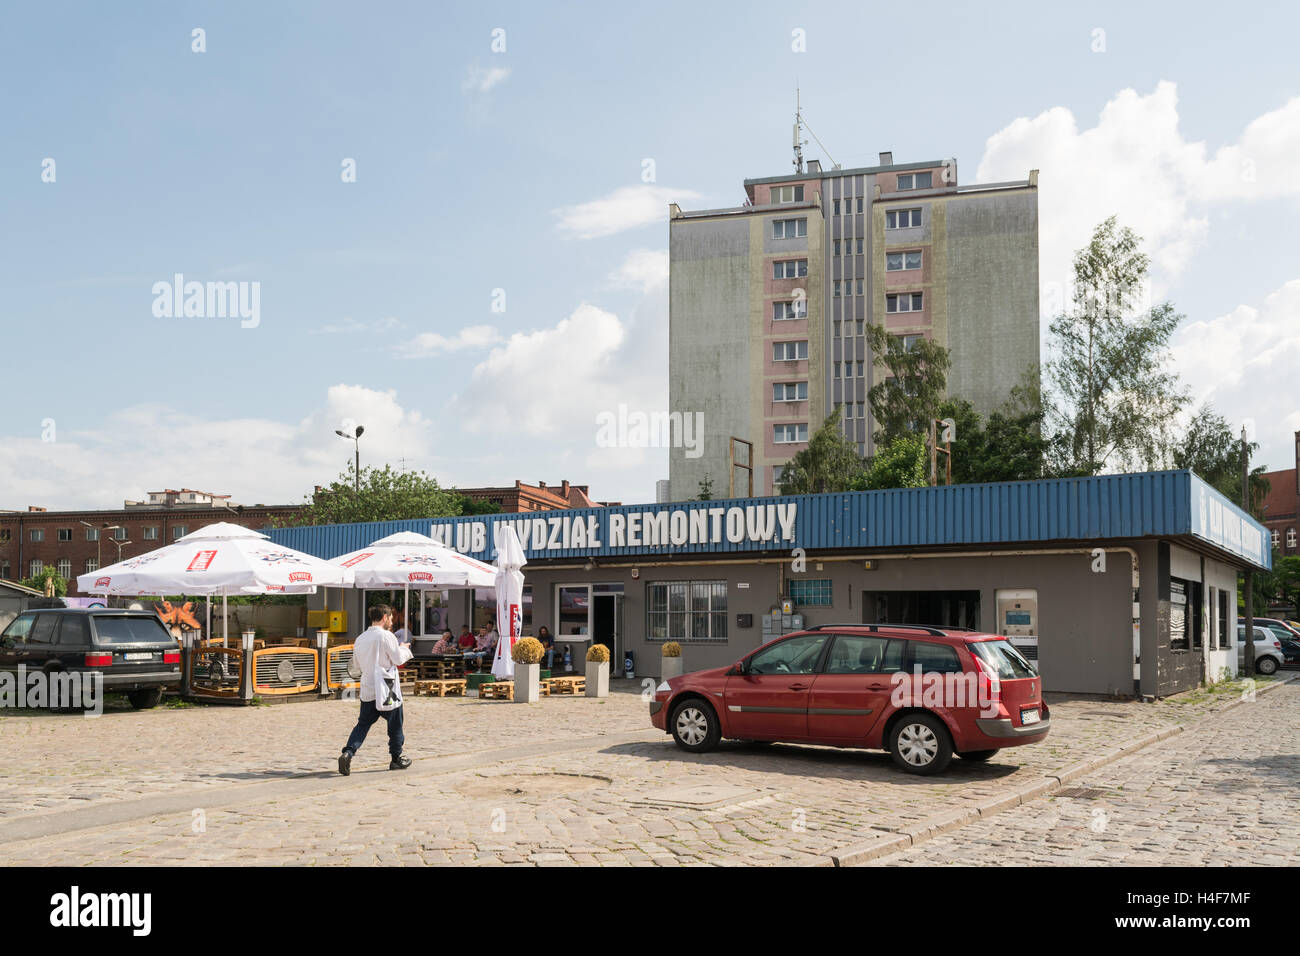 Wydzial Remontowy pub club concert venue just in front of the historic gate 2 at the Gdansk Shipyard, Gdansk, Poland - Stock Image